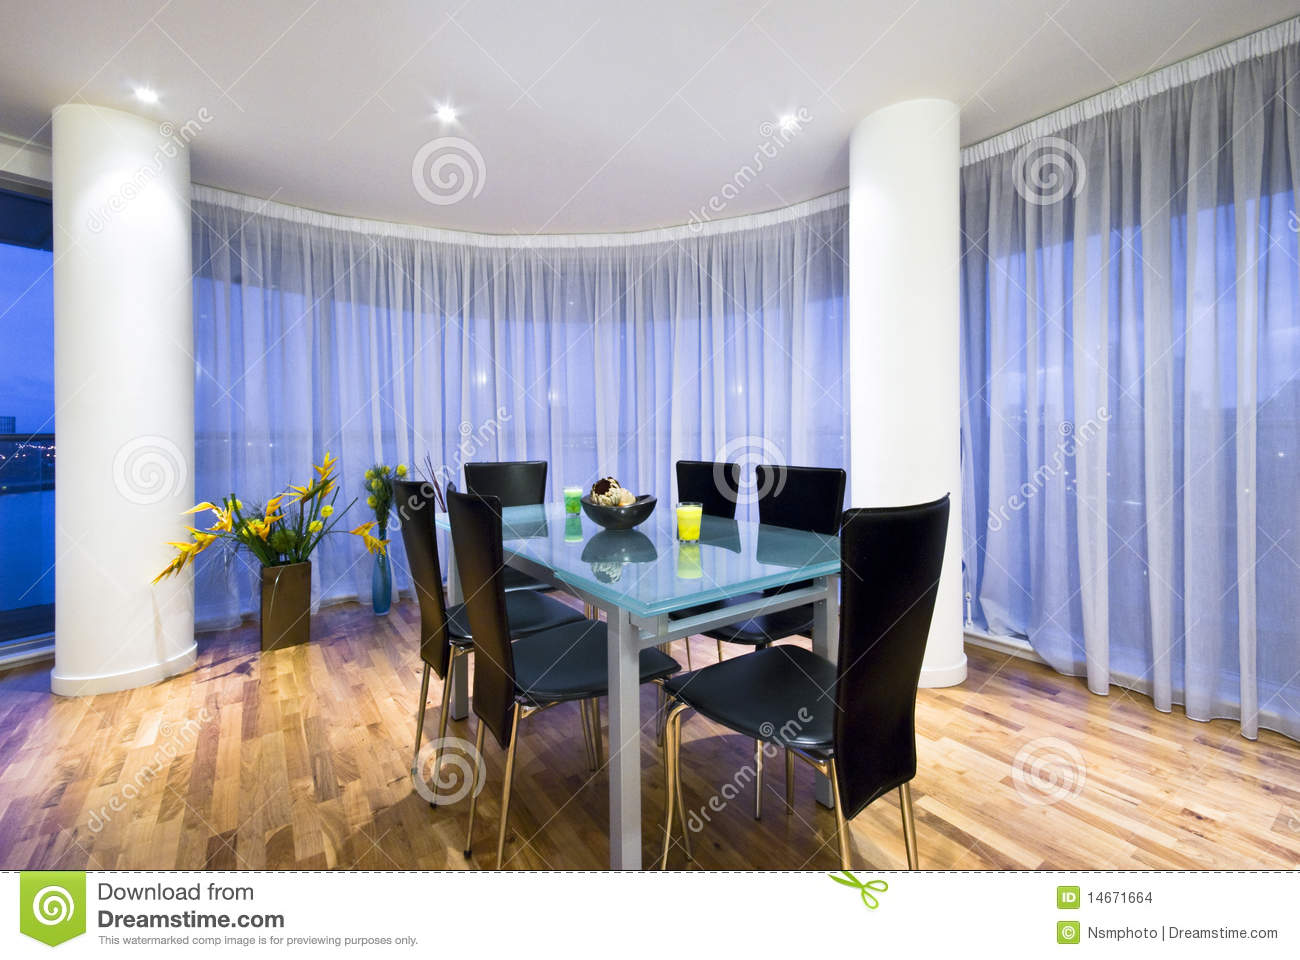 Modern open plan dining area in a penthouse